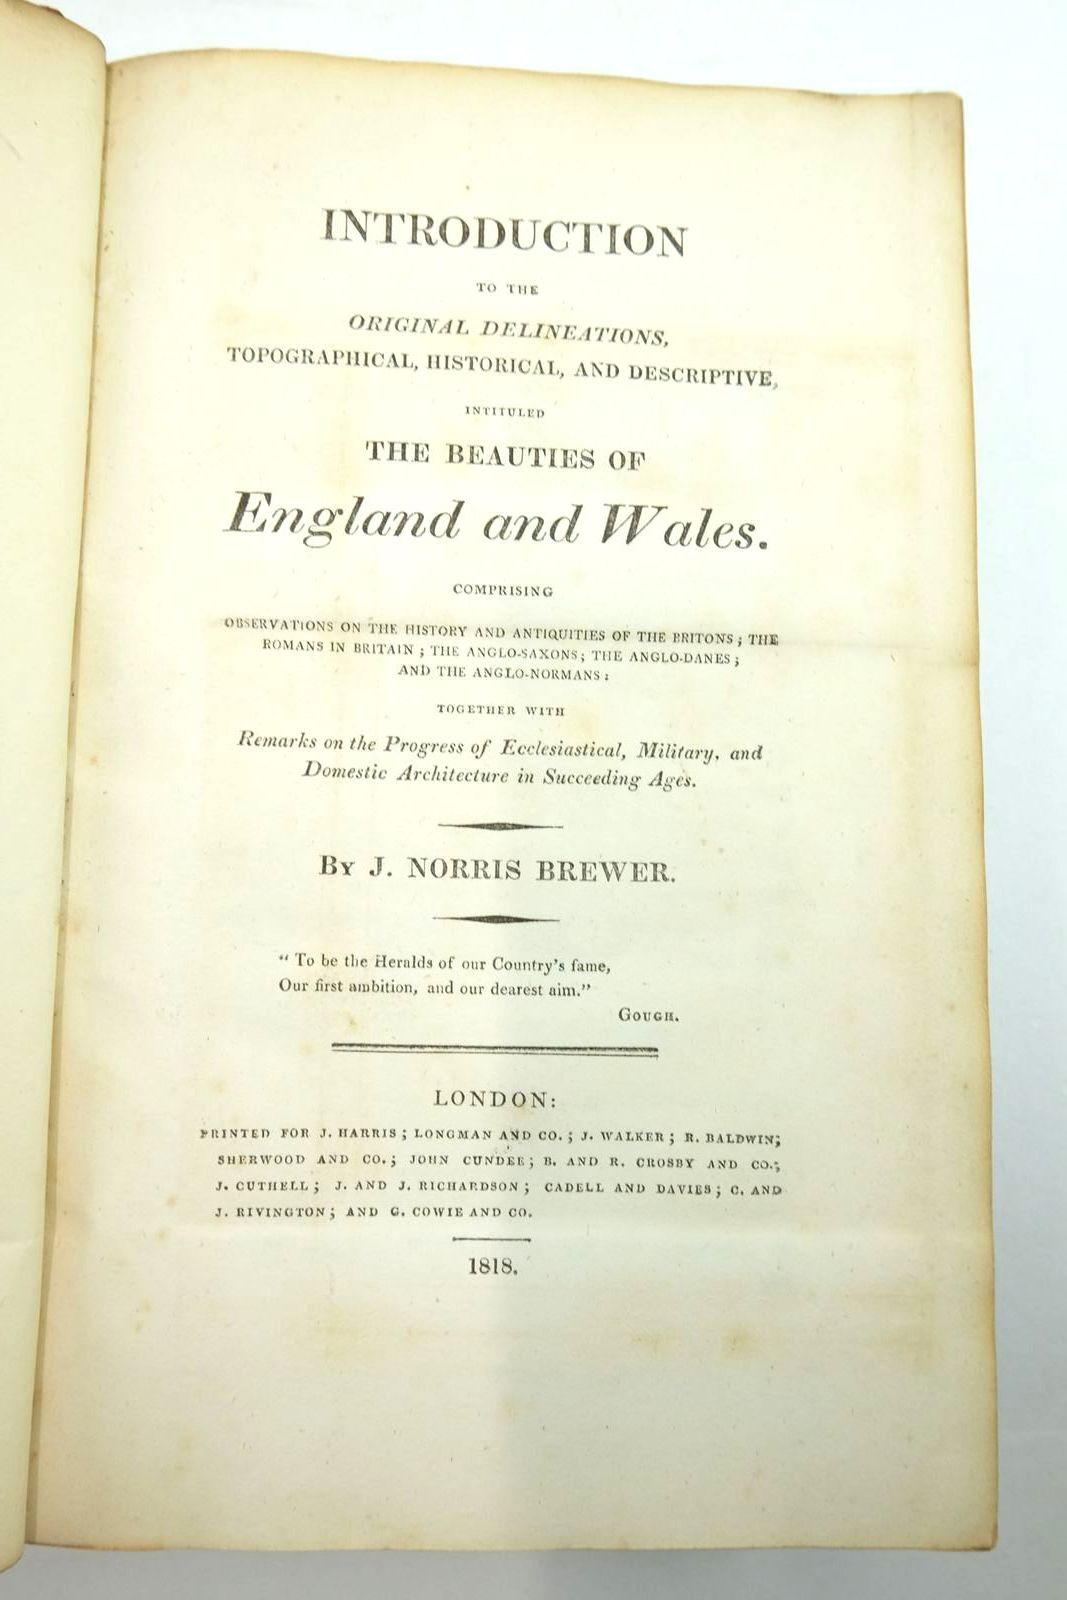 Photo of INTRODUCTION TO THE ORIGINAL DELINEATIONS, TOPOGRAPHICAL, HISTORICAL AND DESCRIPTIVE, INTITULED THE BEAUTIES OF ENGLAND AND WALES written by Brewer, J. Norris published by J.Harris, Longman And Co. (STOCK CODE: 2134497)  for sale by Stella & Rose's Books